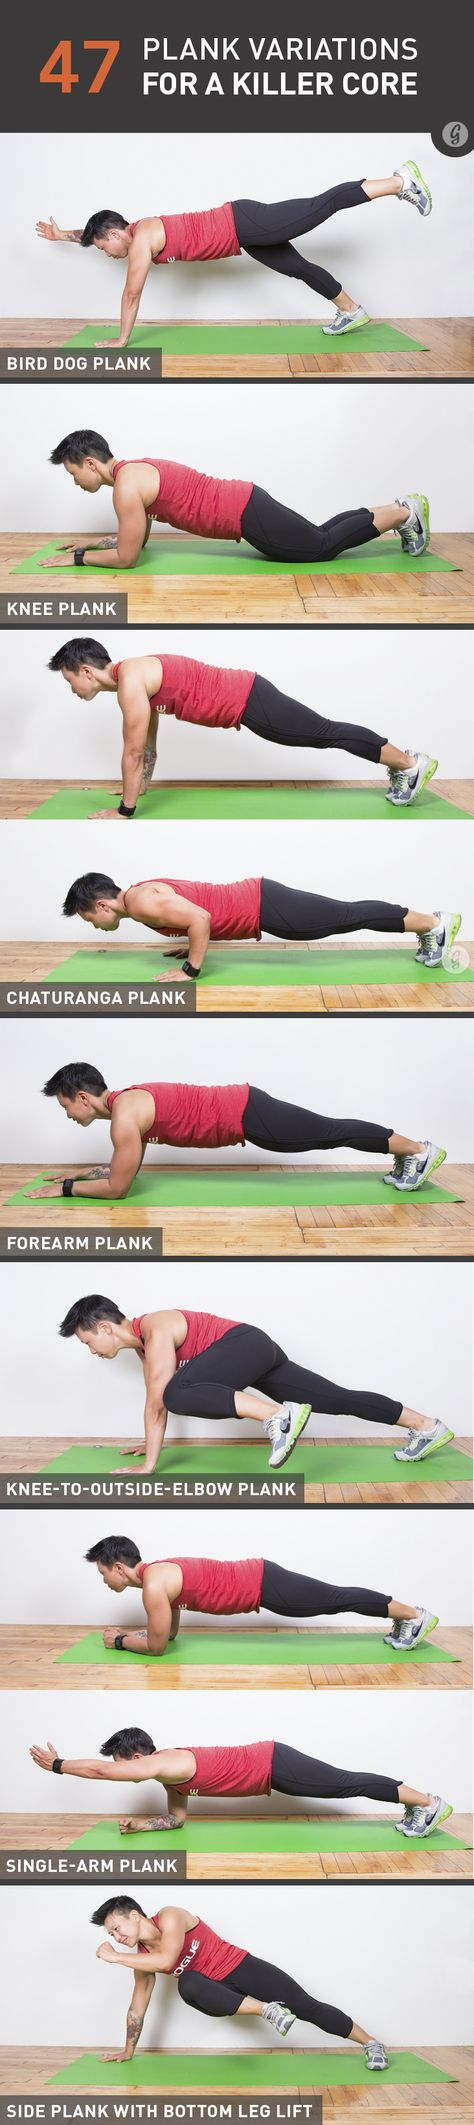 It's time to kiss those crunches good-bye. With nearly 50 ways to challenge your core and... greatist.com/...